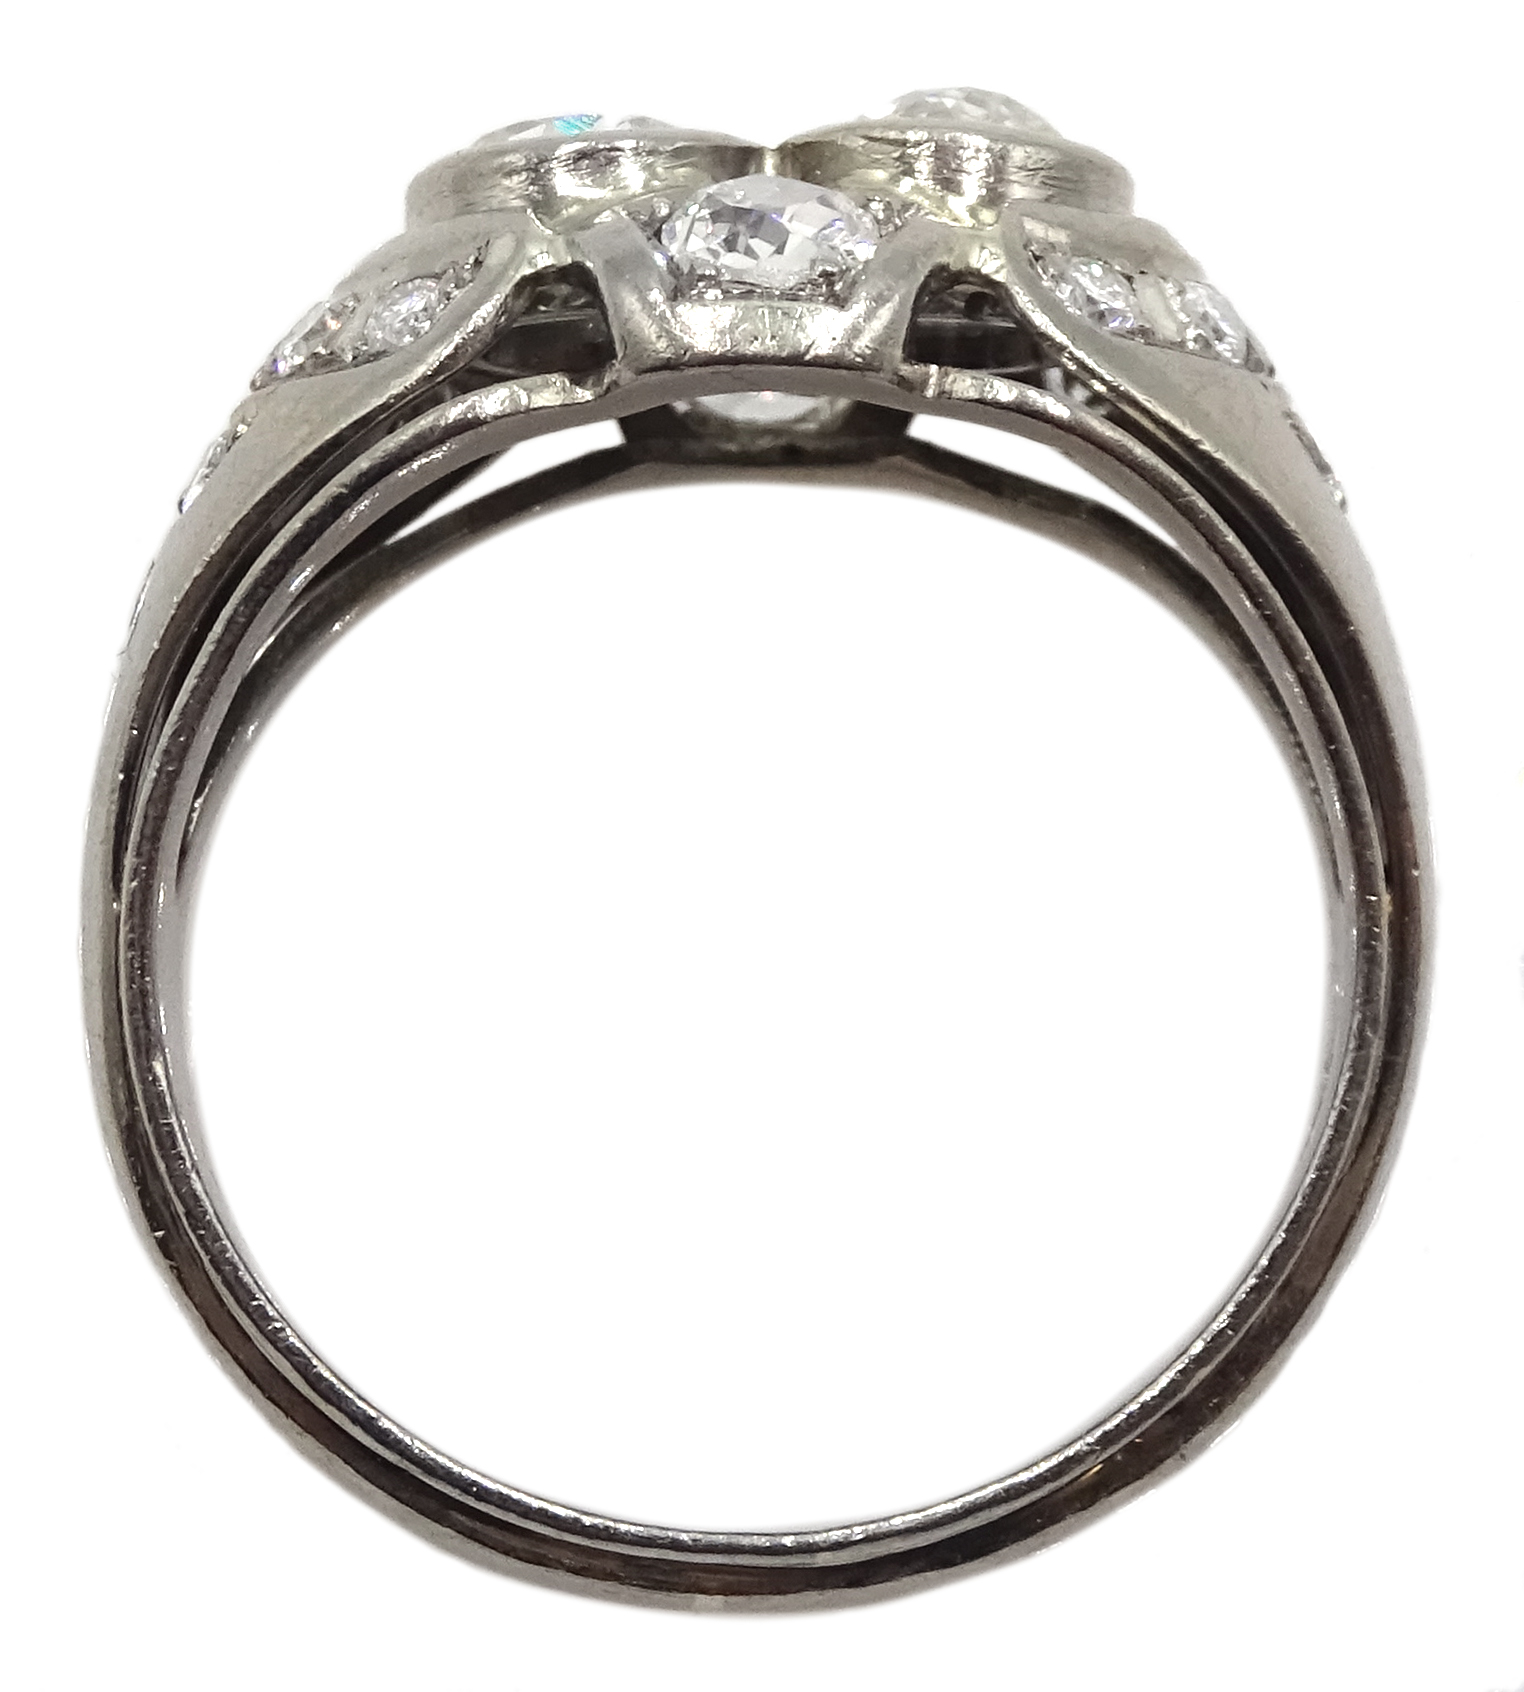 Continental 14ct white gold old cut and round brilliant cut diamond ring - Image 5 of 5